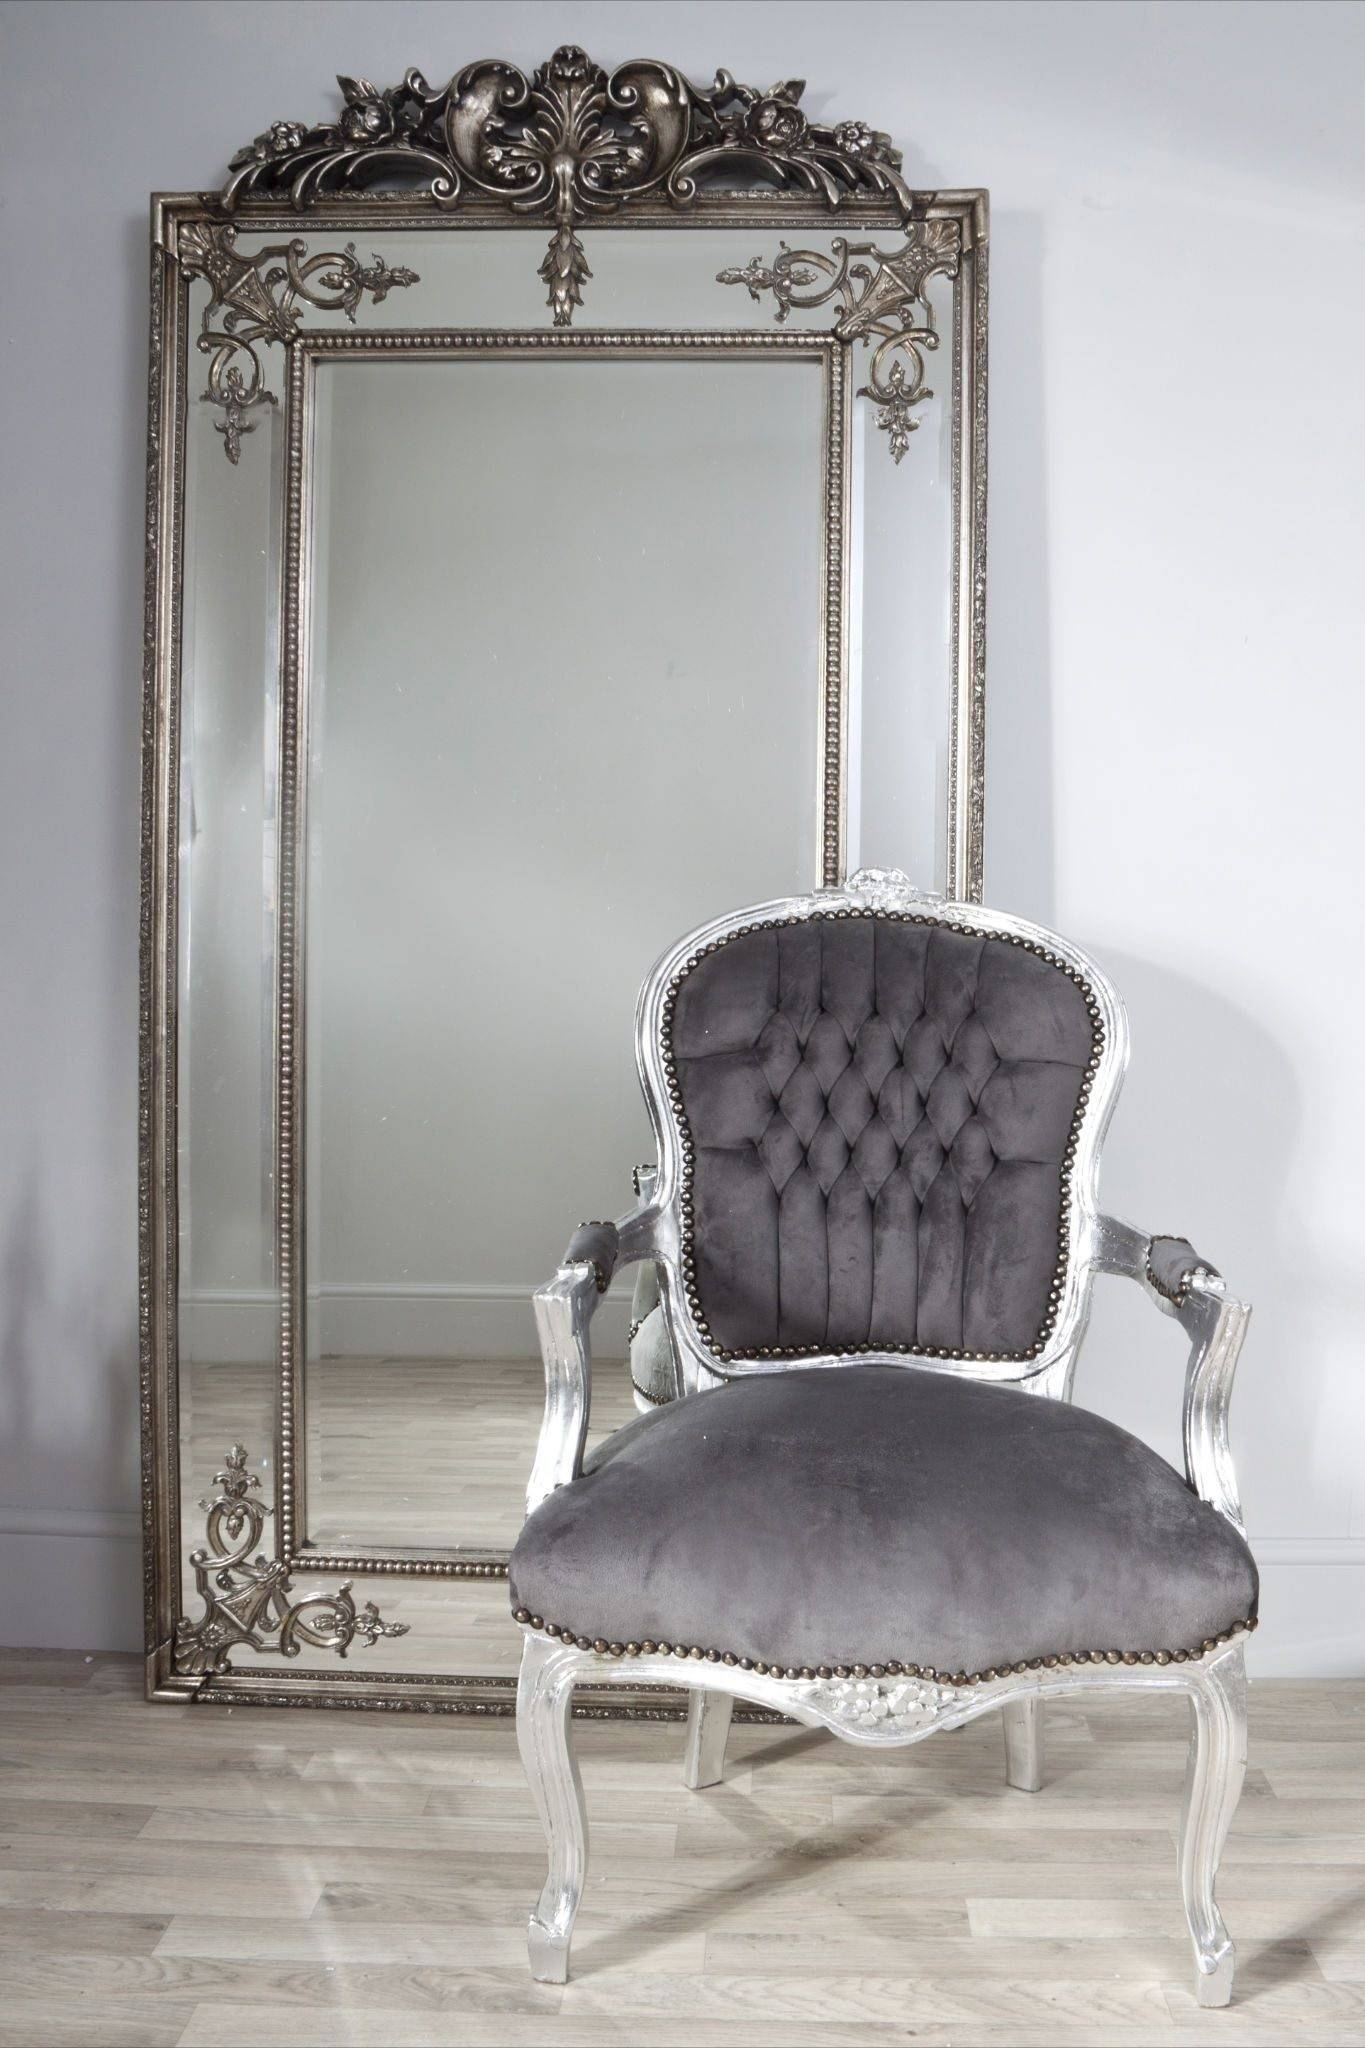 Ornate Mirrors For Sale 71 Fascinating Ideas On Gorgeous Ornate within Silver Ornate Wall Mirrors (Image 20 of 25)